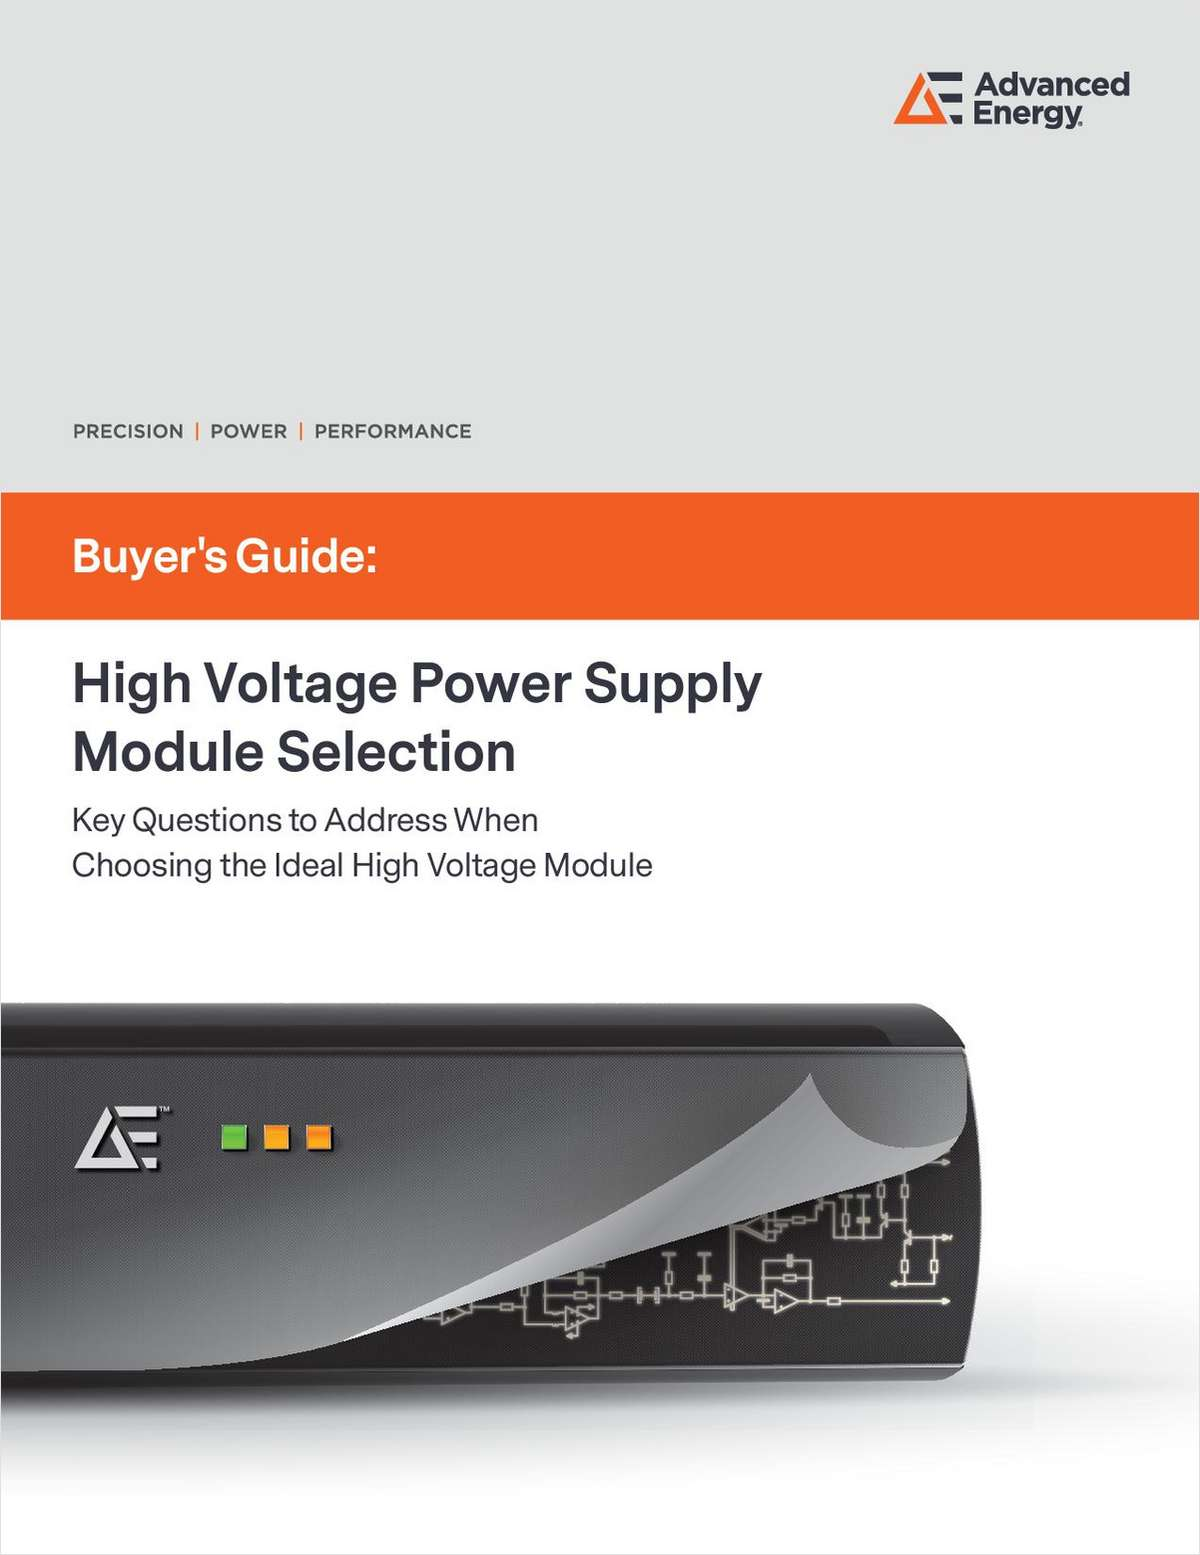 High Voltage Power Supply Module Selection: Key Questions to Address When Choosing the Ideal High Voltage Module